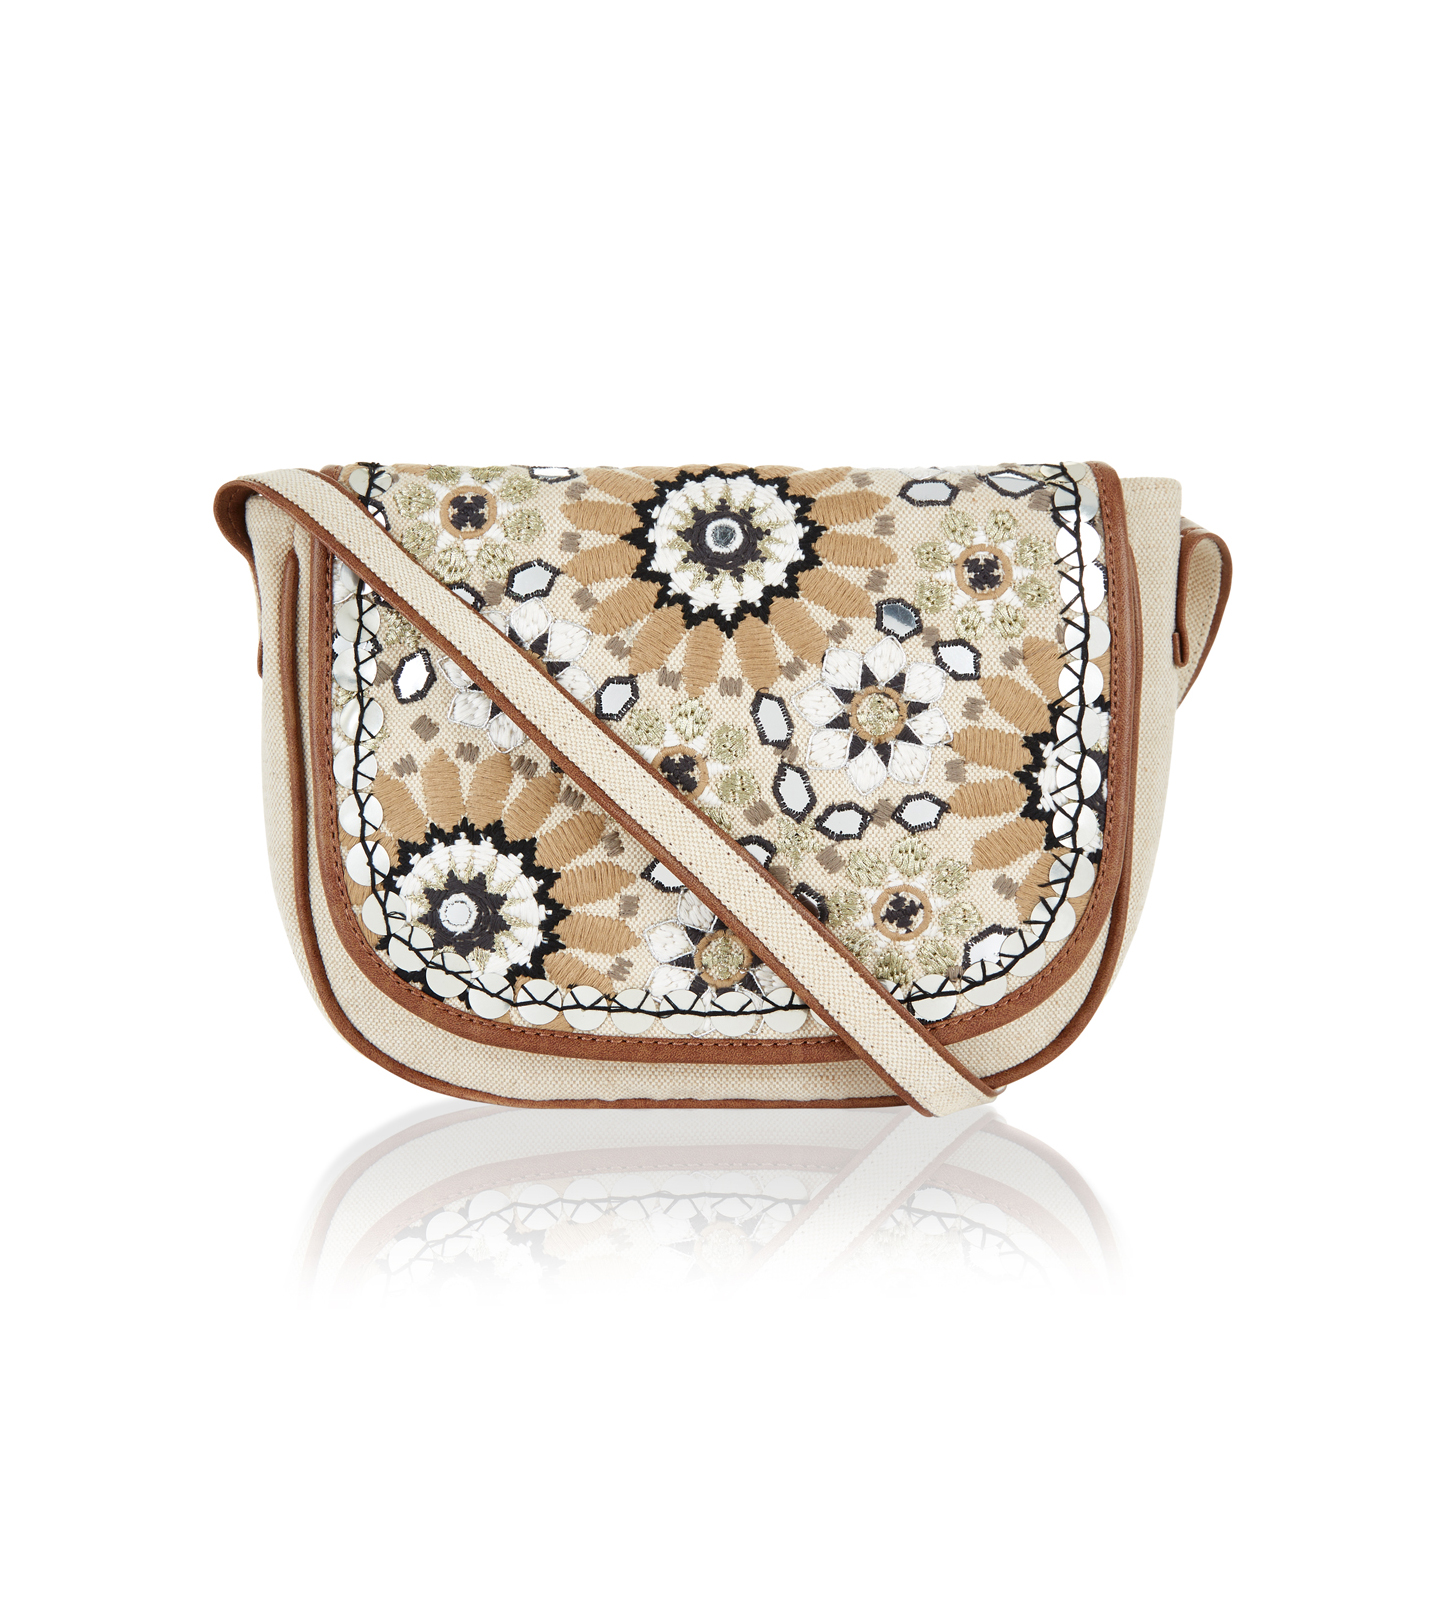 Accessorize Ariana Embellished Across-Body Bag